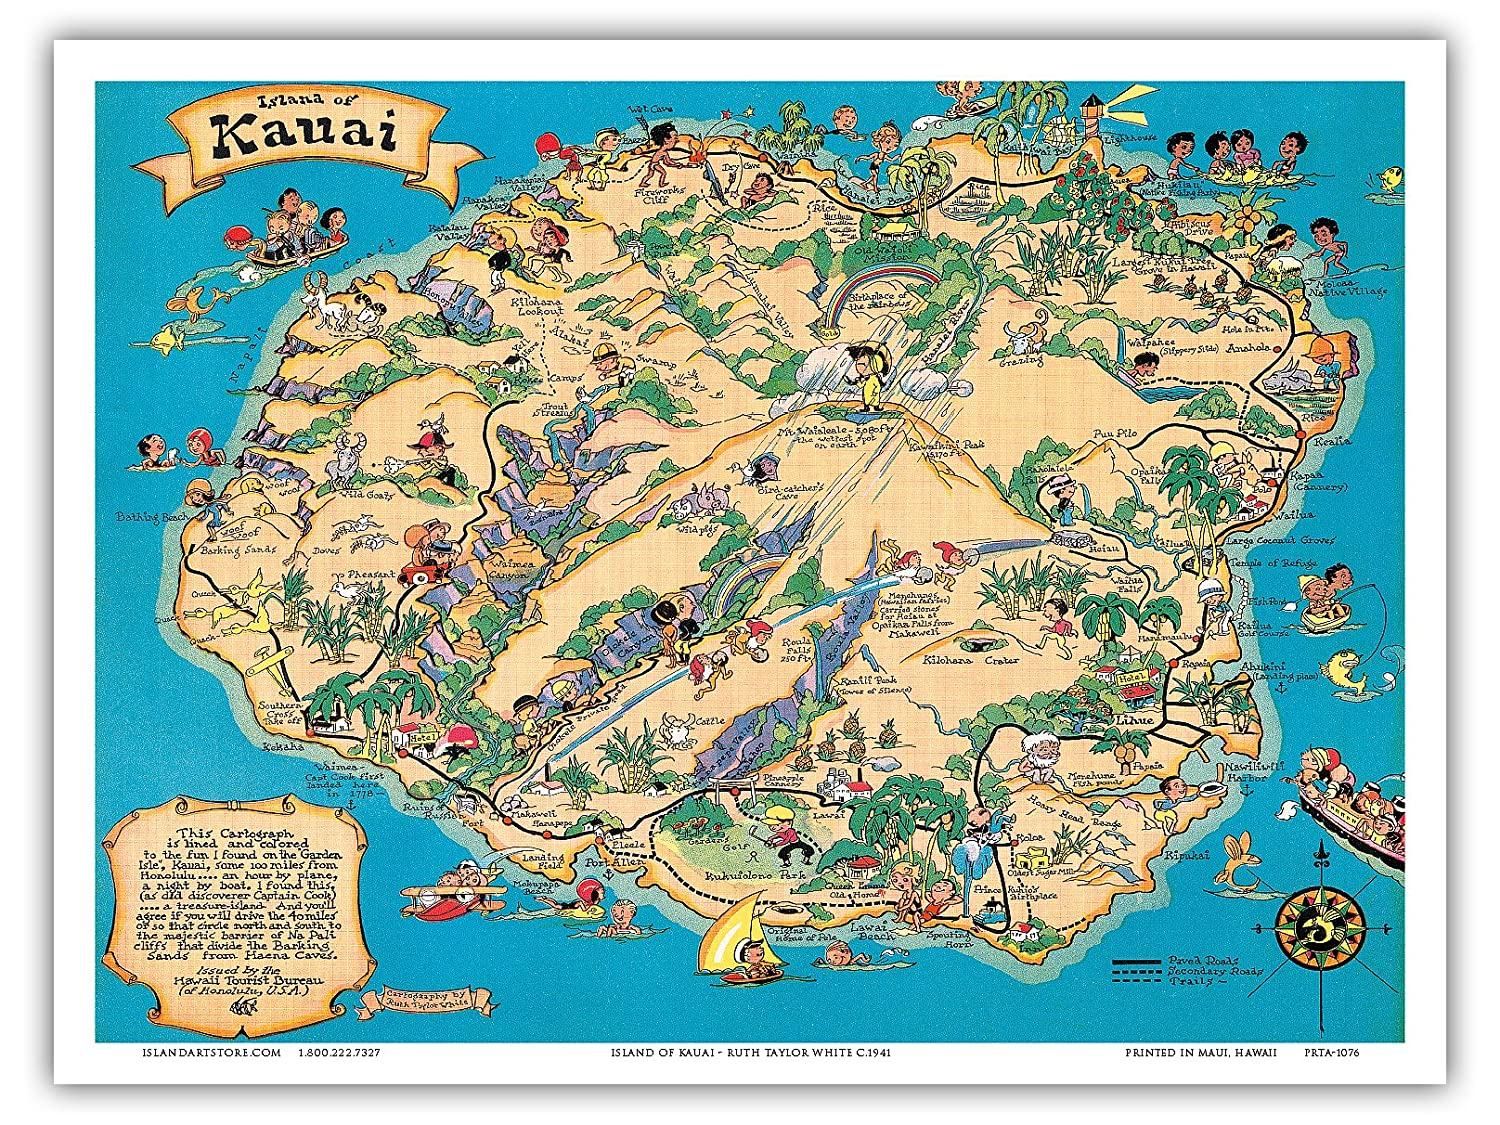 Hawaiian Island of Kauai Map - Hawaii Tourist Bureau - Vintage Hawaiian on molokai island map, corpus christi island map, kauai hawaii, kihei island map, kauai places to visit, rome island map, new orleans island map, oahu map, kilauea map, lanai island map, mississippi island map, oregon island map, connecticut island map, ohio island map, lihue island map, maui island map, virginia island map, myrtle beach island map, san jose island map, hawaii map,